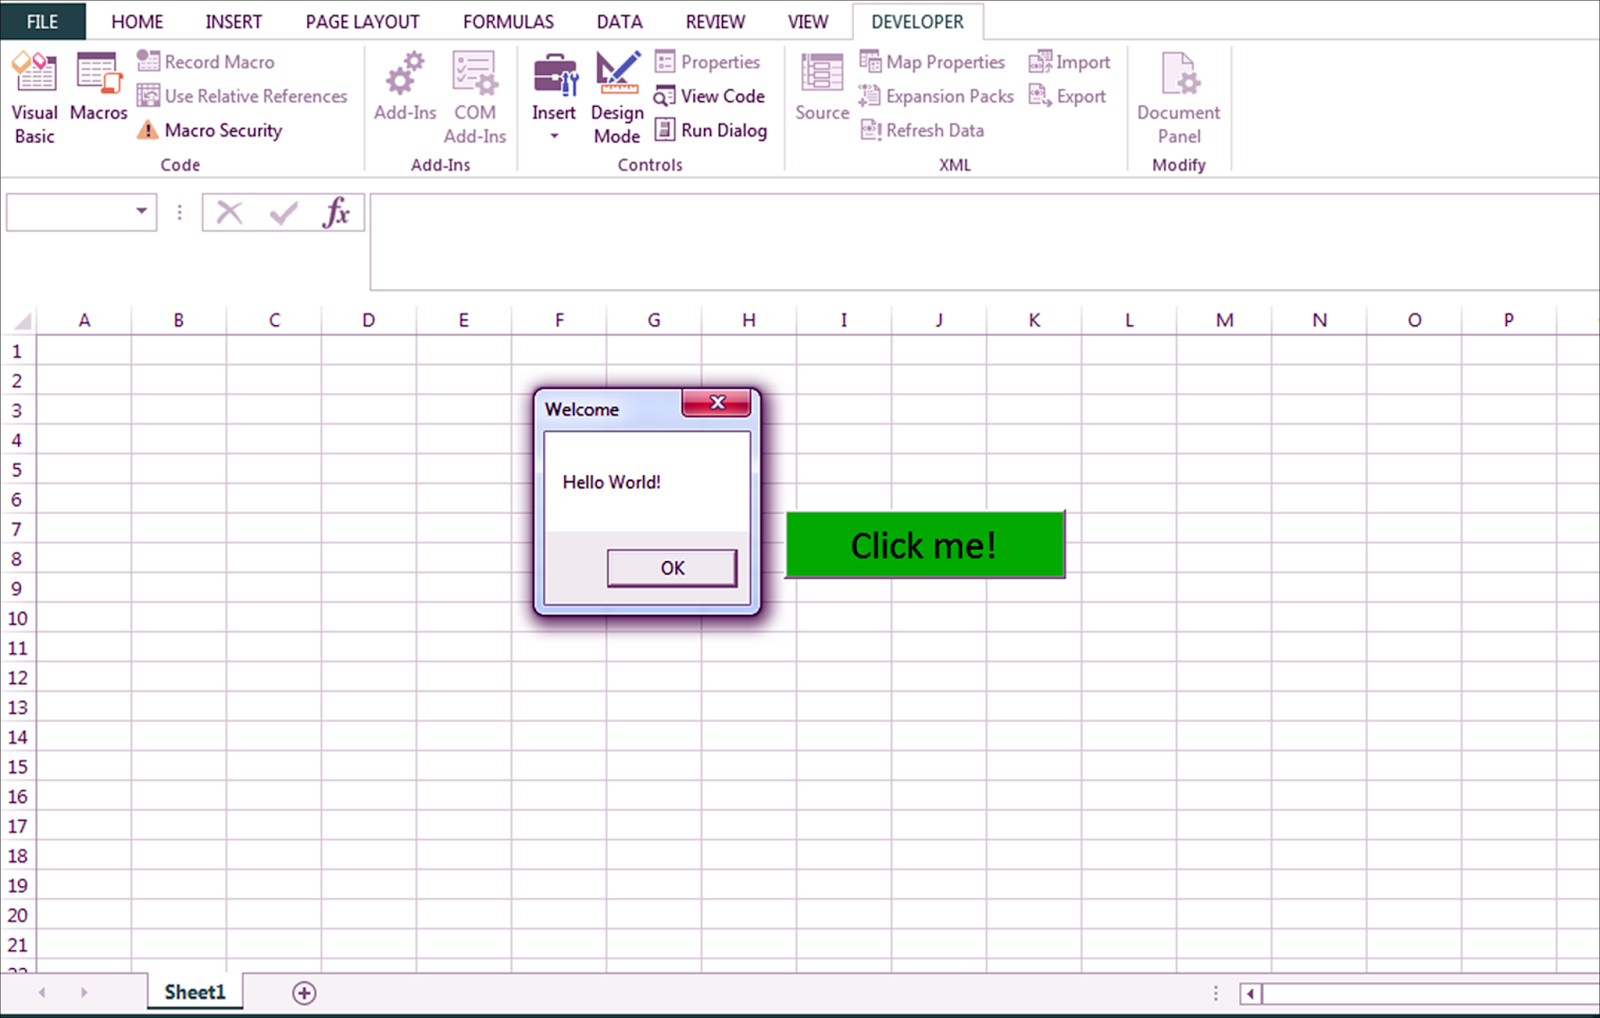 Workbooks vba workbooks.open : How to create a message box in excel using VBA and pop up whenever ...